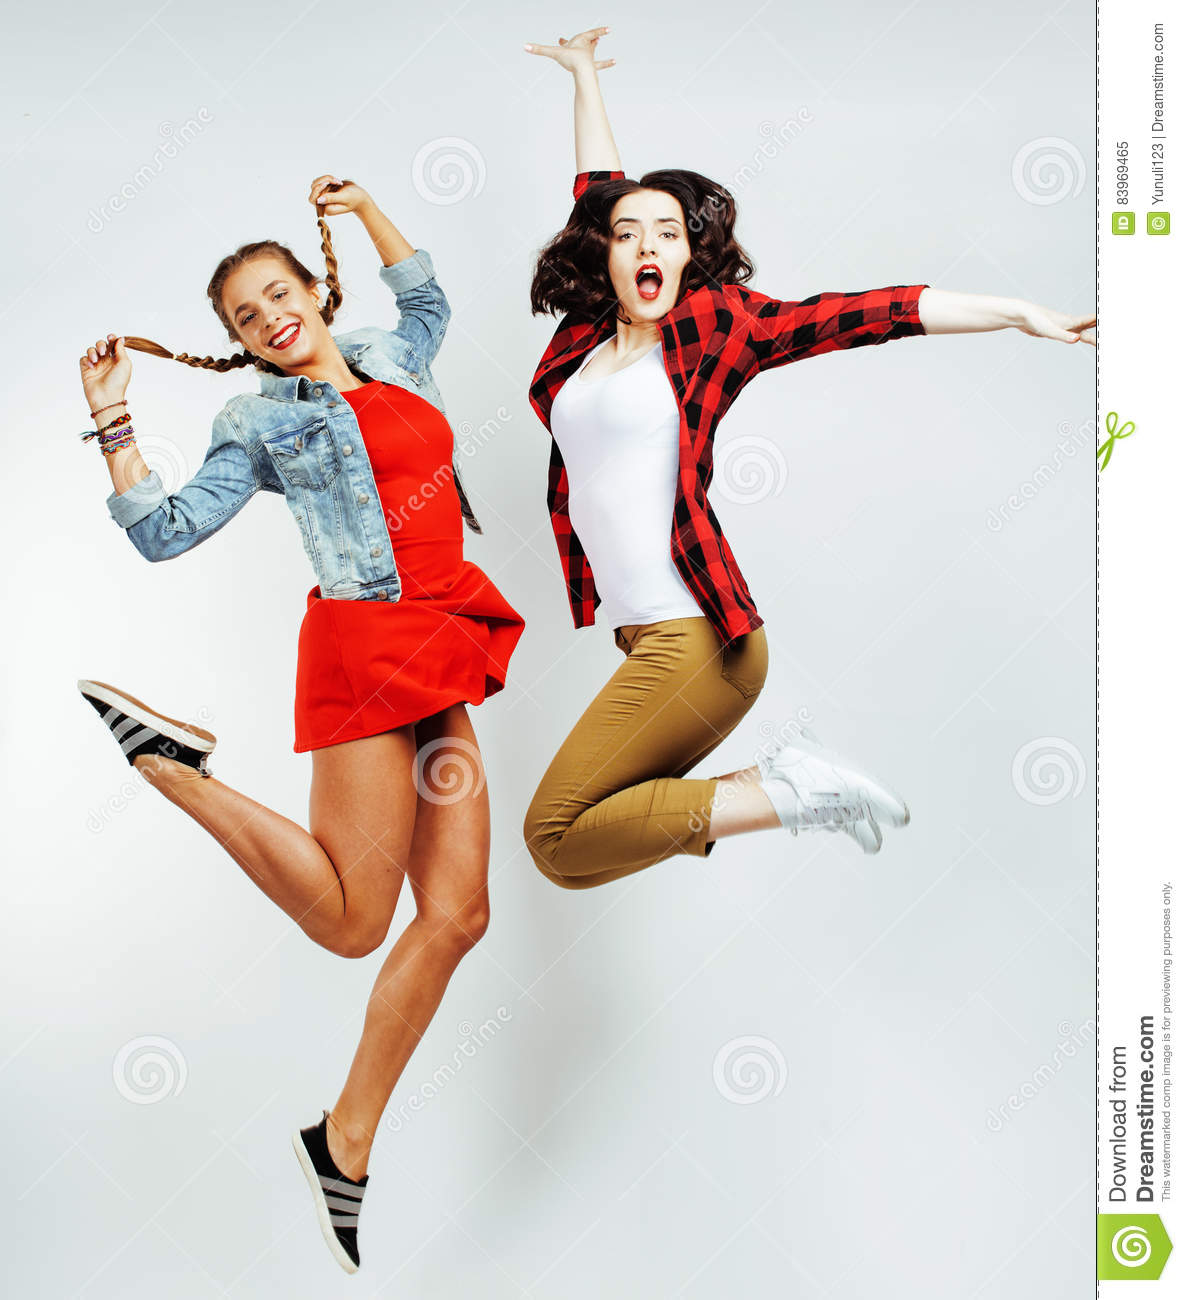 Two pretty brunette and blonde teenage girl friends jumping happy smiling on white background, lifestyle people concept